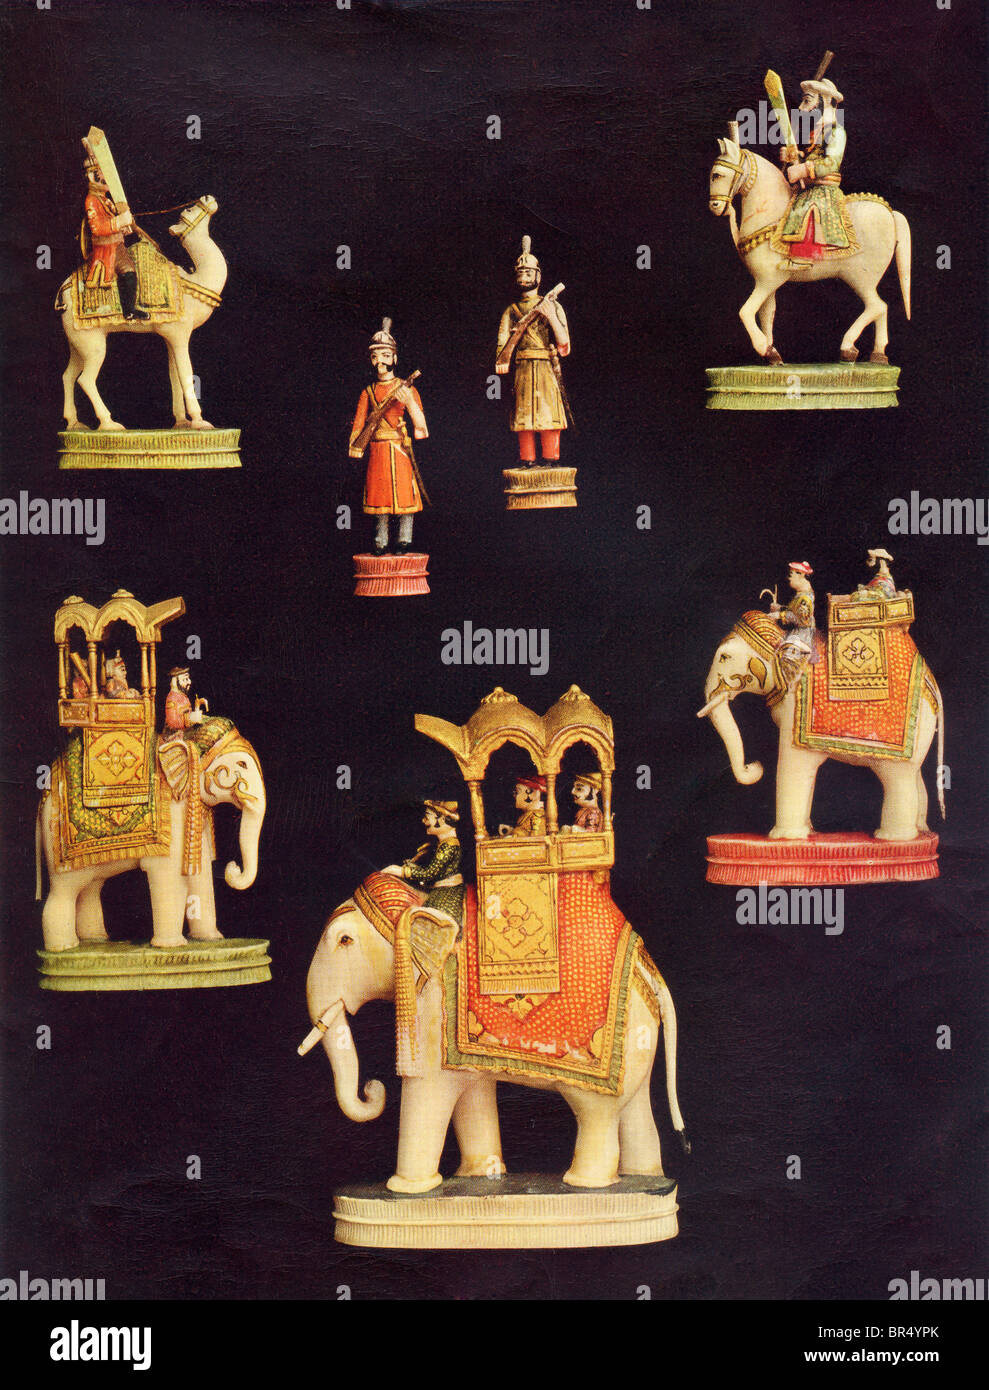 Pieces from a complete chess set in carved and coloured ivory. Made in Delhi, India c.1790 for the Begum Samru. - Stock Image